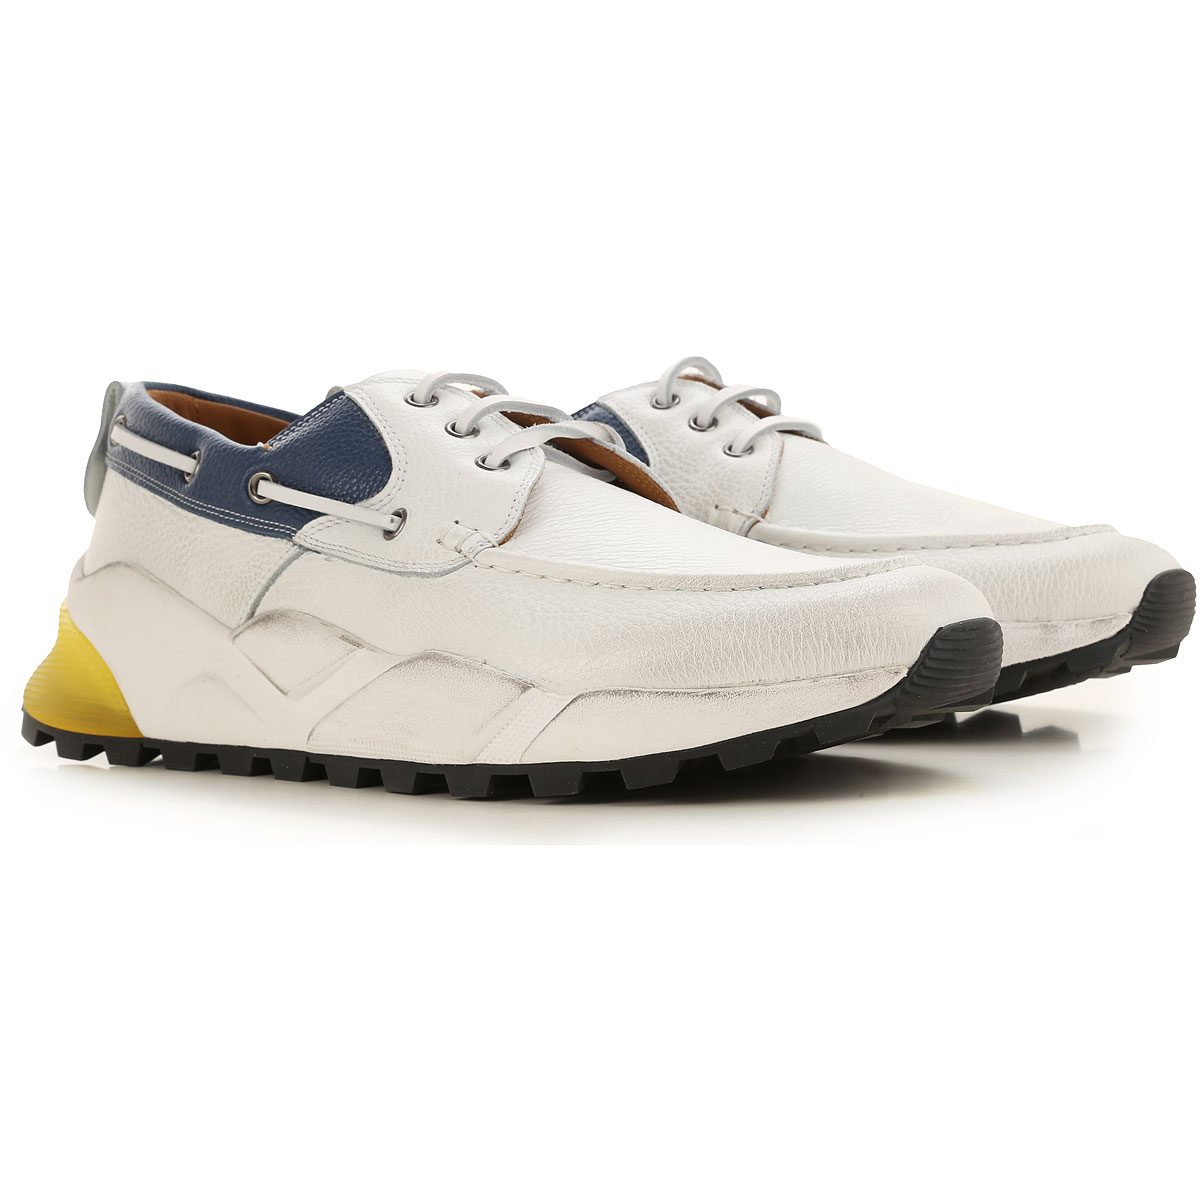 Voile Blanche Sneakers for Men On Sale, White, Leather, 2019, 10 10.5 8 9